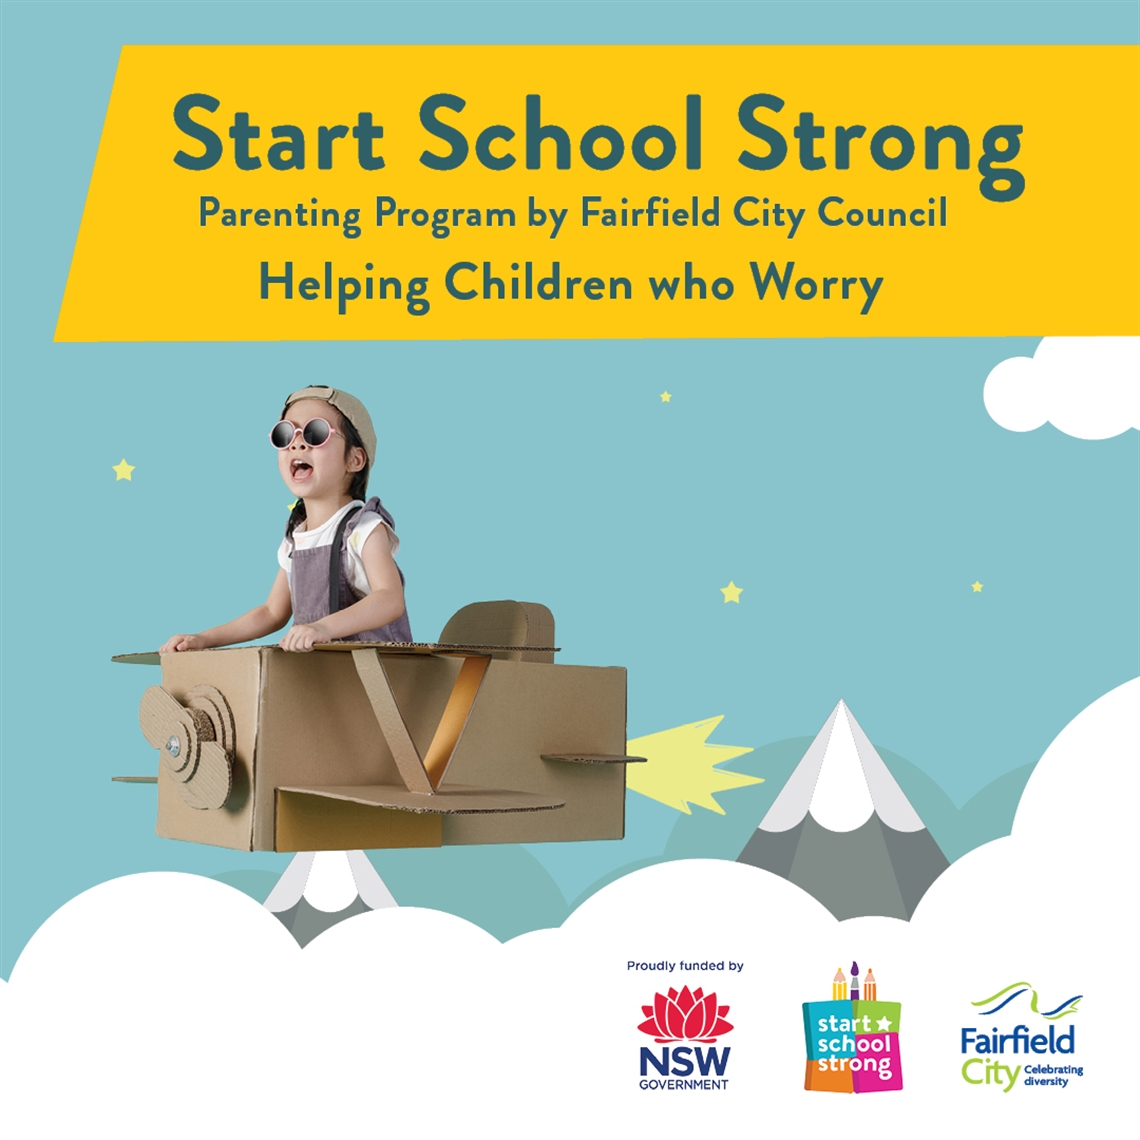 Start School Strong SM Helping Children who worry.jpg